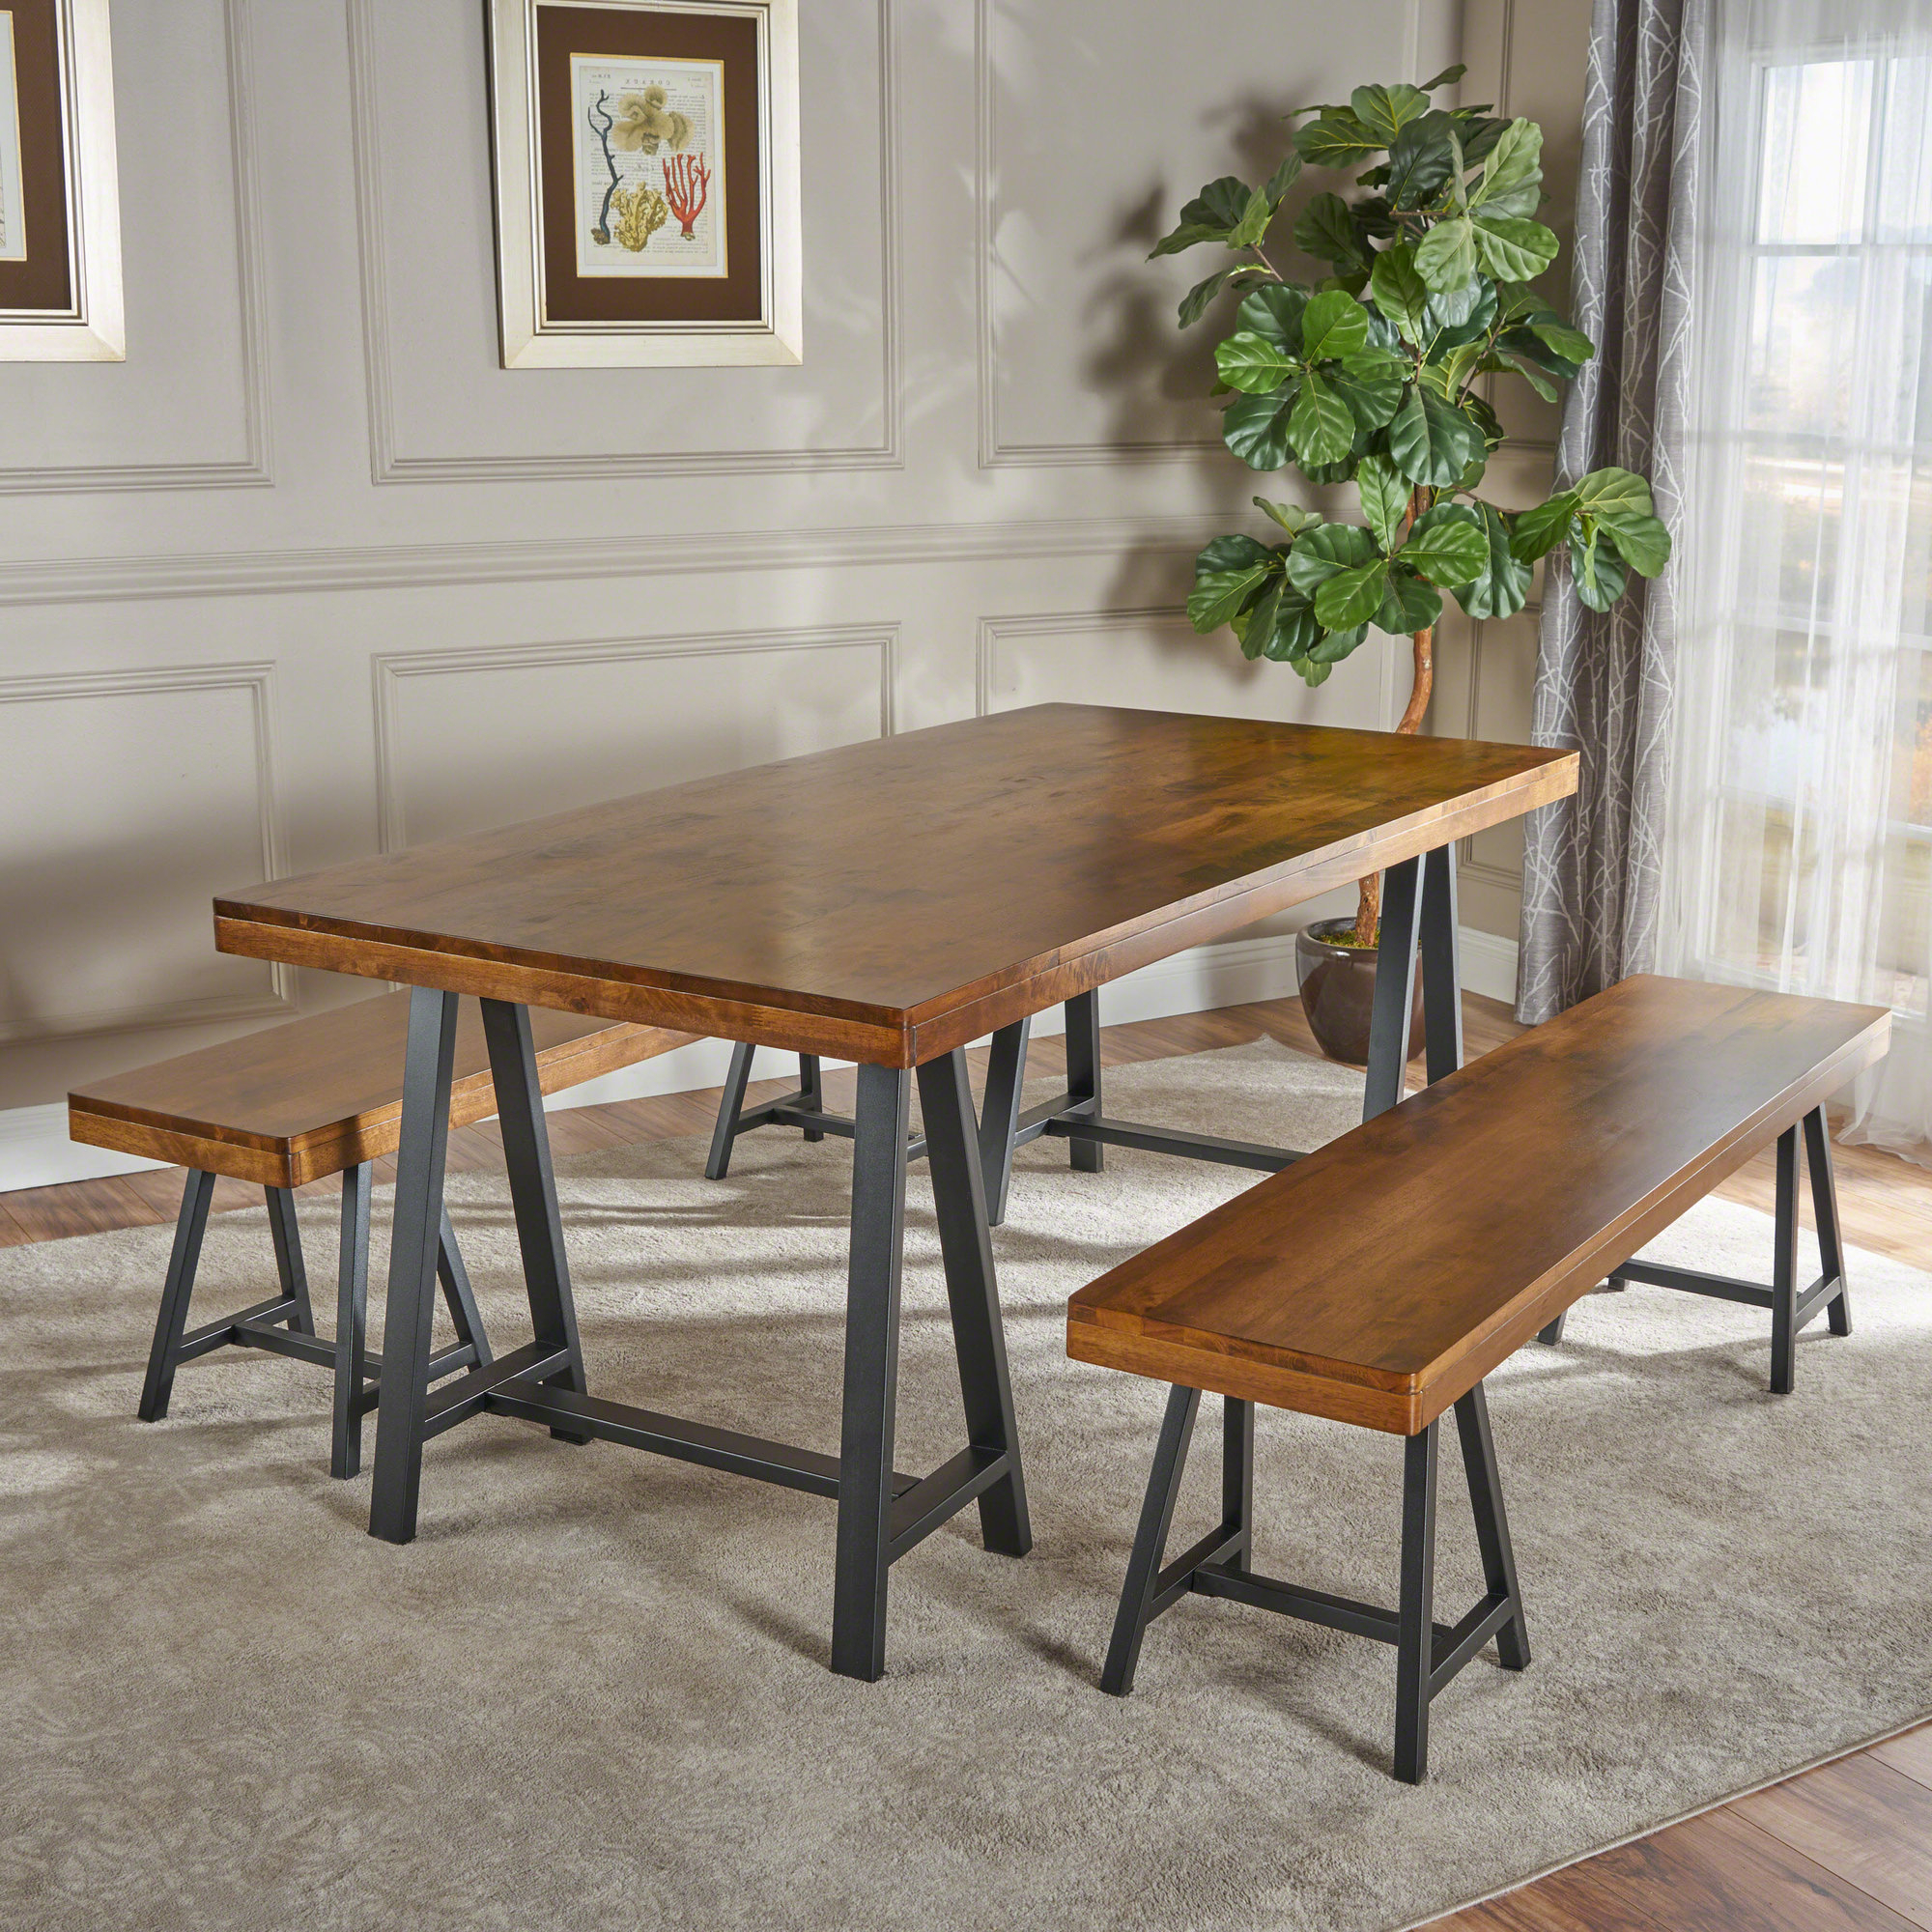 Most Recent Autberry 5 Piece Dining Sets Throughout Details About Gracie Oaks Mannino Wood Picnic 3 Piece Dining Set (View 19 of 20)